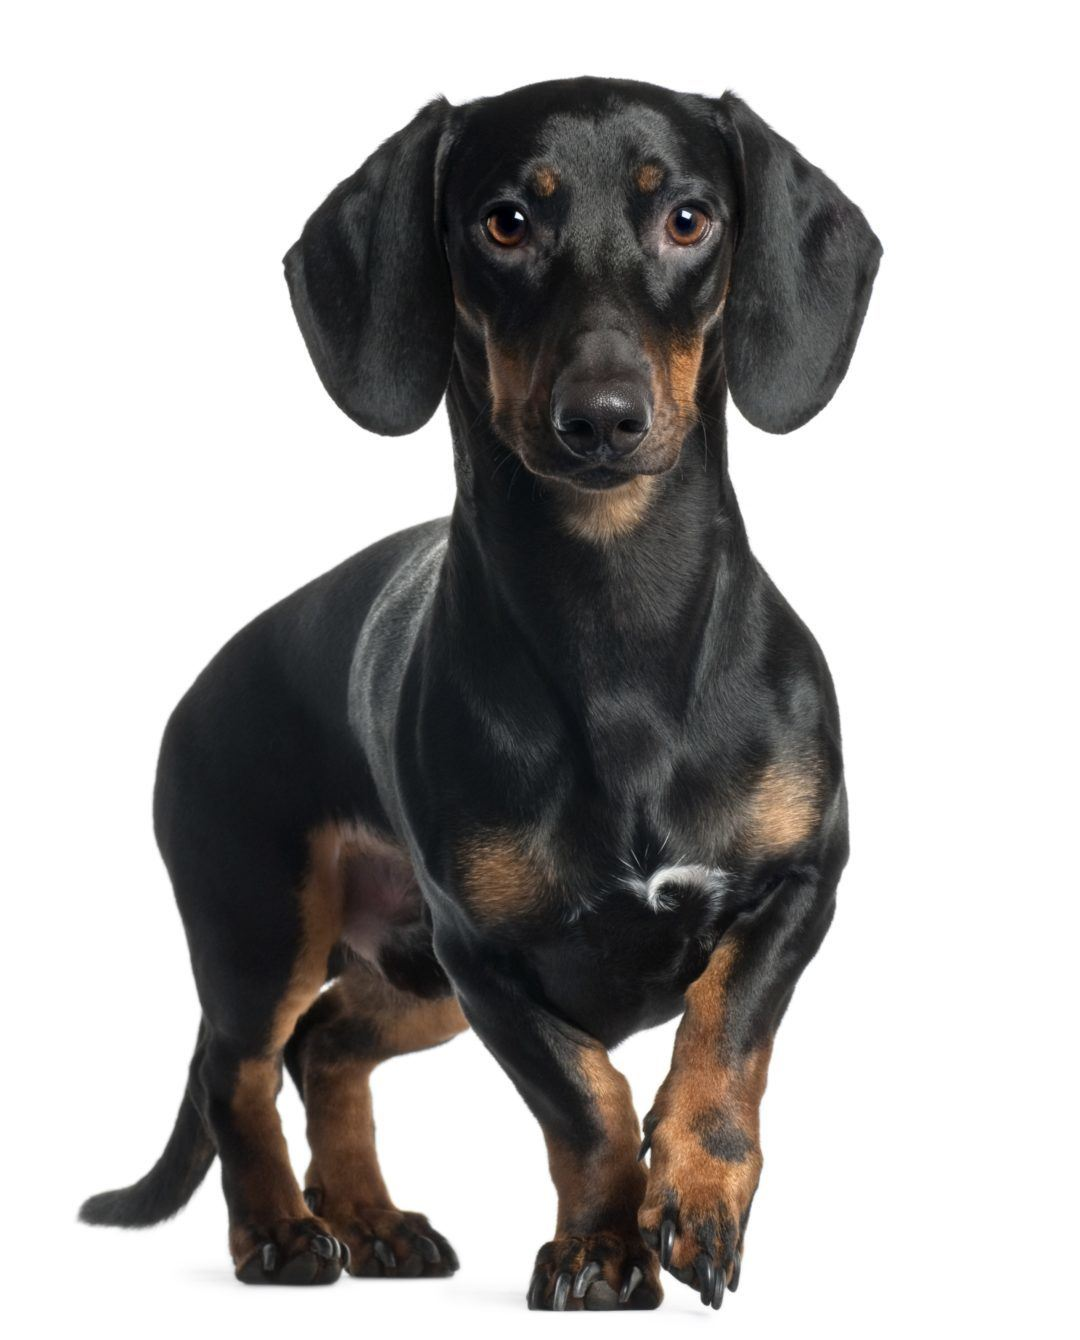 Signs of Intervertebral disc disease (IVDD) in Dachshunds